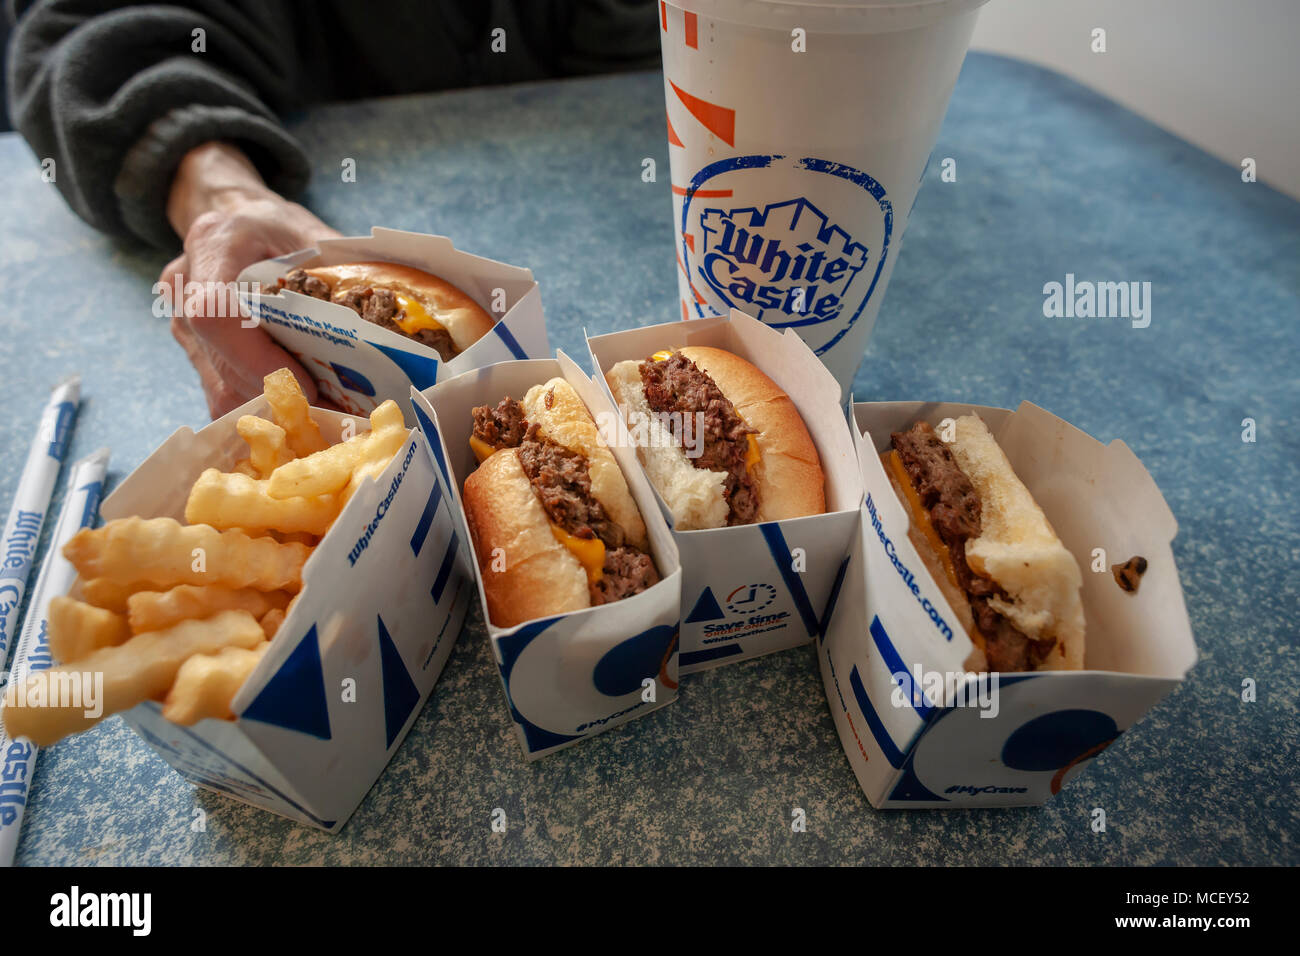 White Castle debuts the Impossible Slider using plant-based 'meat' from Impossible Foods, seen in a White Castle in Brooklyn in New York on Sunday, April 15, 2018. Impossible Foods meatless ground beef is being used to create the new menu item, previously only available in higher-end fast casual restaurants and is currently on the menu is 140 locations in the New York and Chicago areas.The sliders sell for $1.99, approximately double the price of their original product. (© Richard B. Levine) - Stock Image